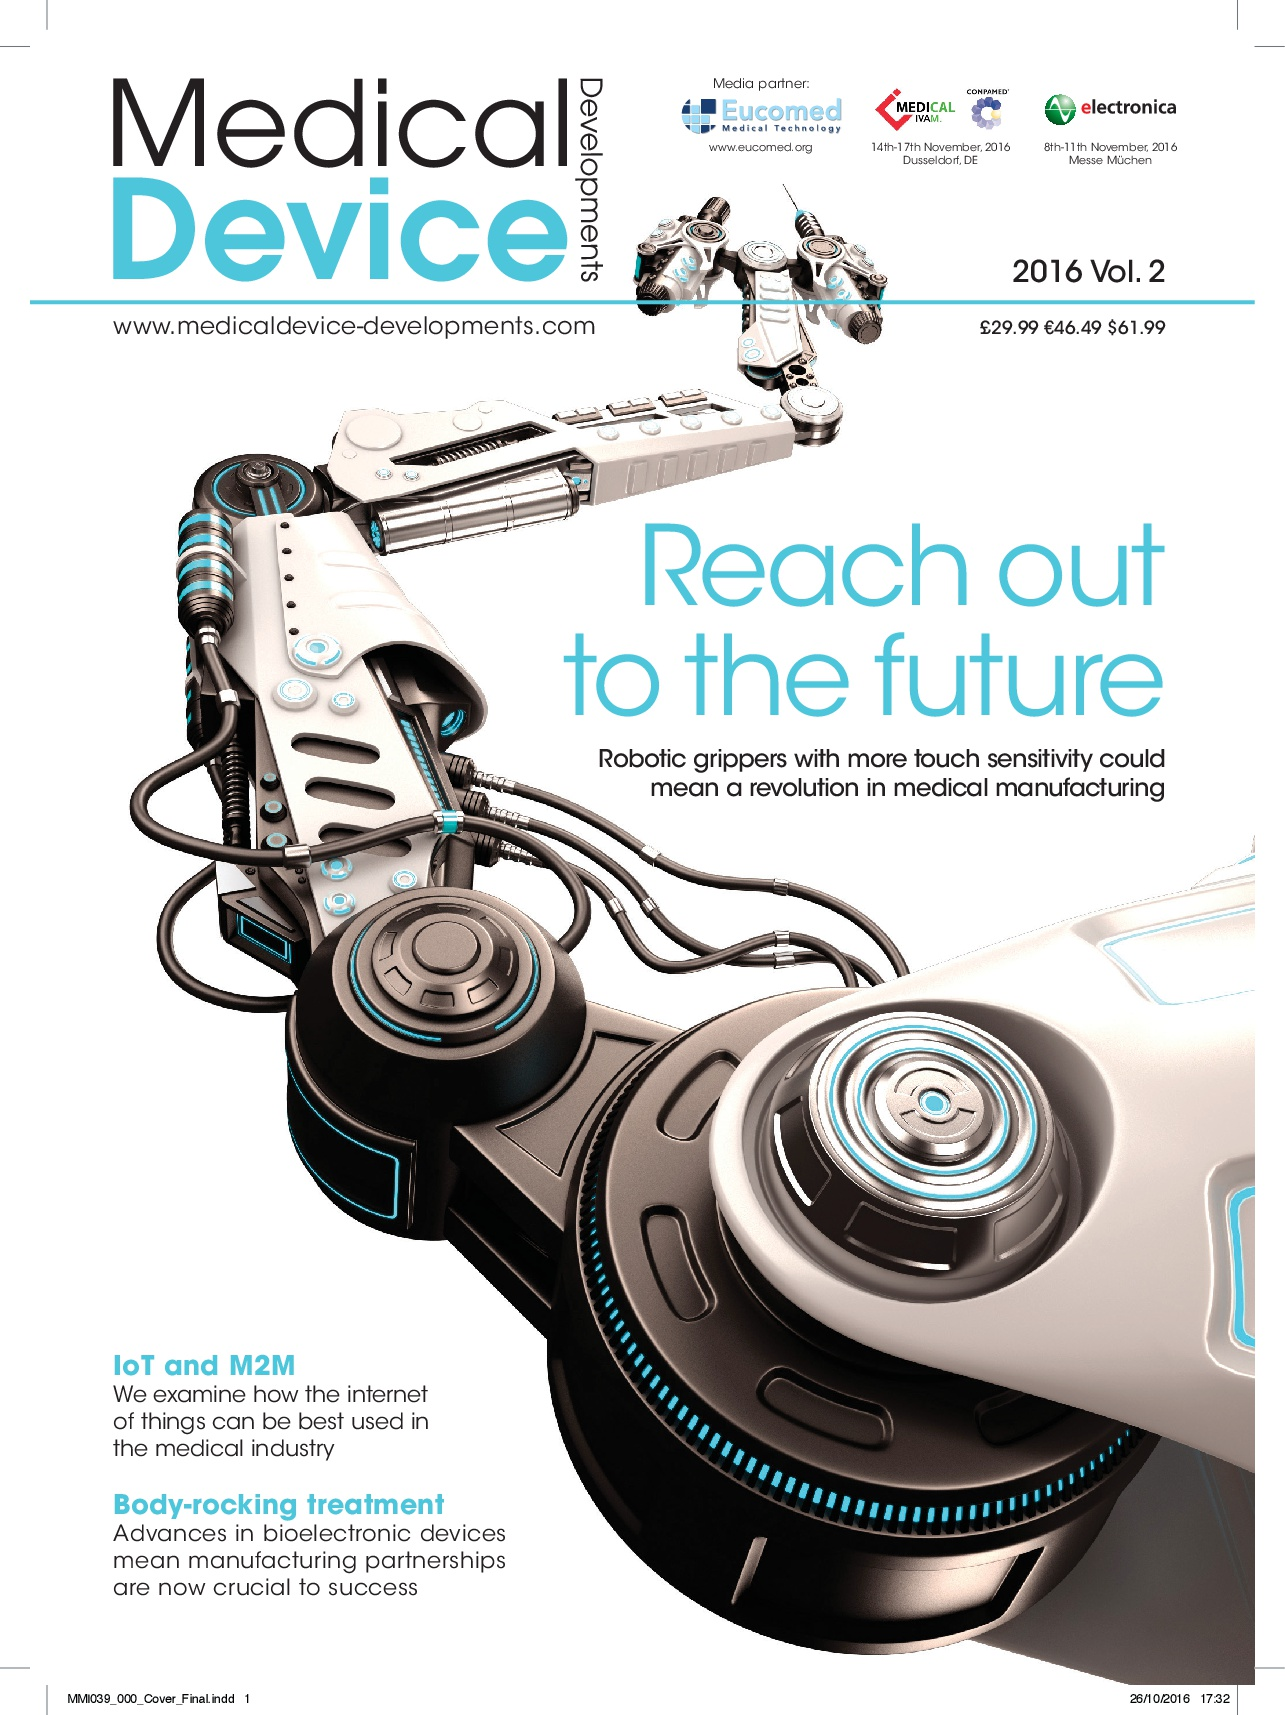 Medical Device Developments